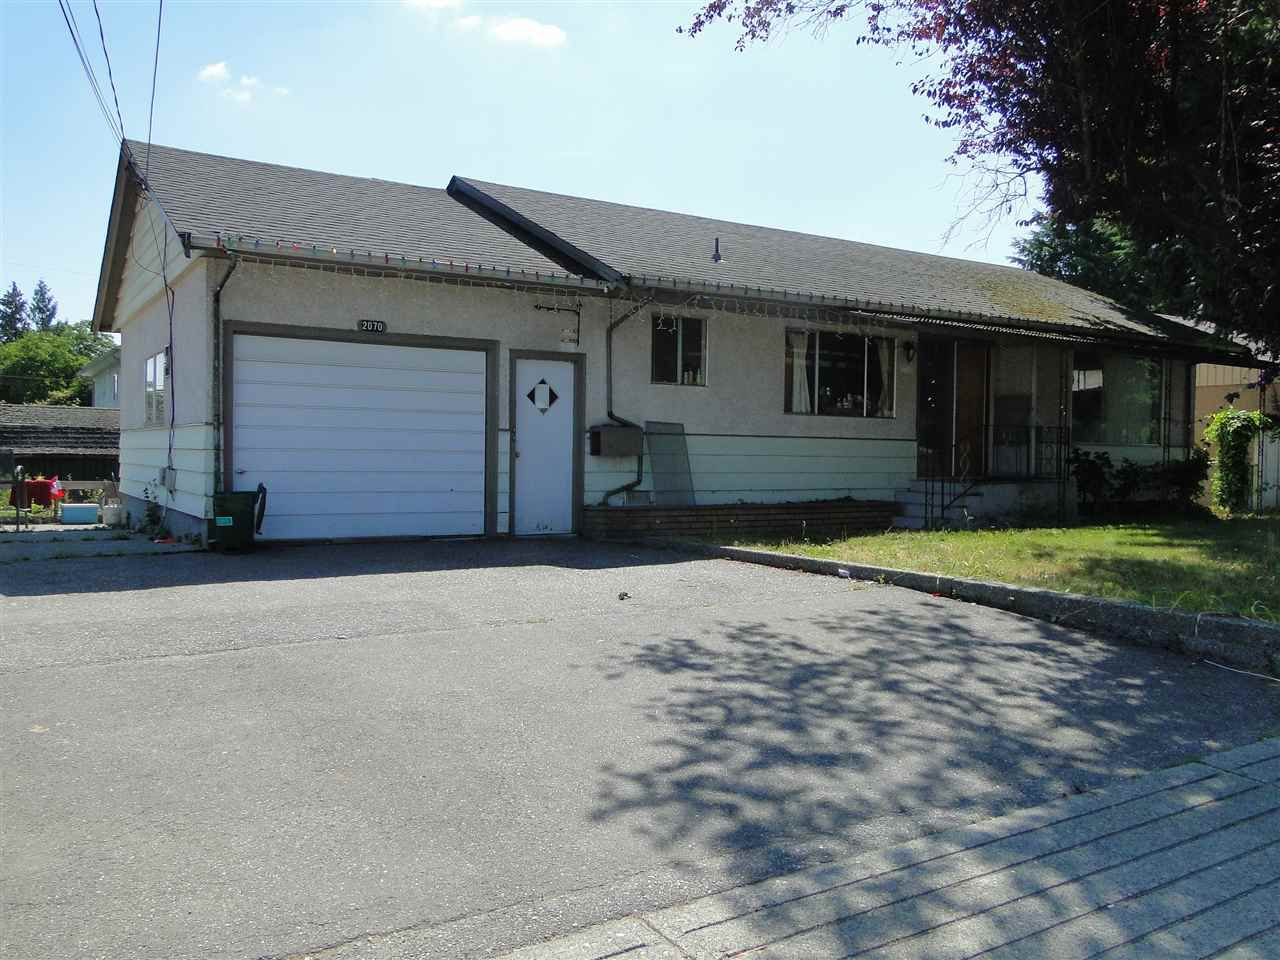 Main Photo: 2070 WARE Street in Abbotsford: Central Abbotsford House for sale : MLS®# R2188884